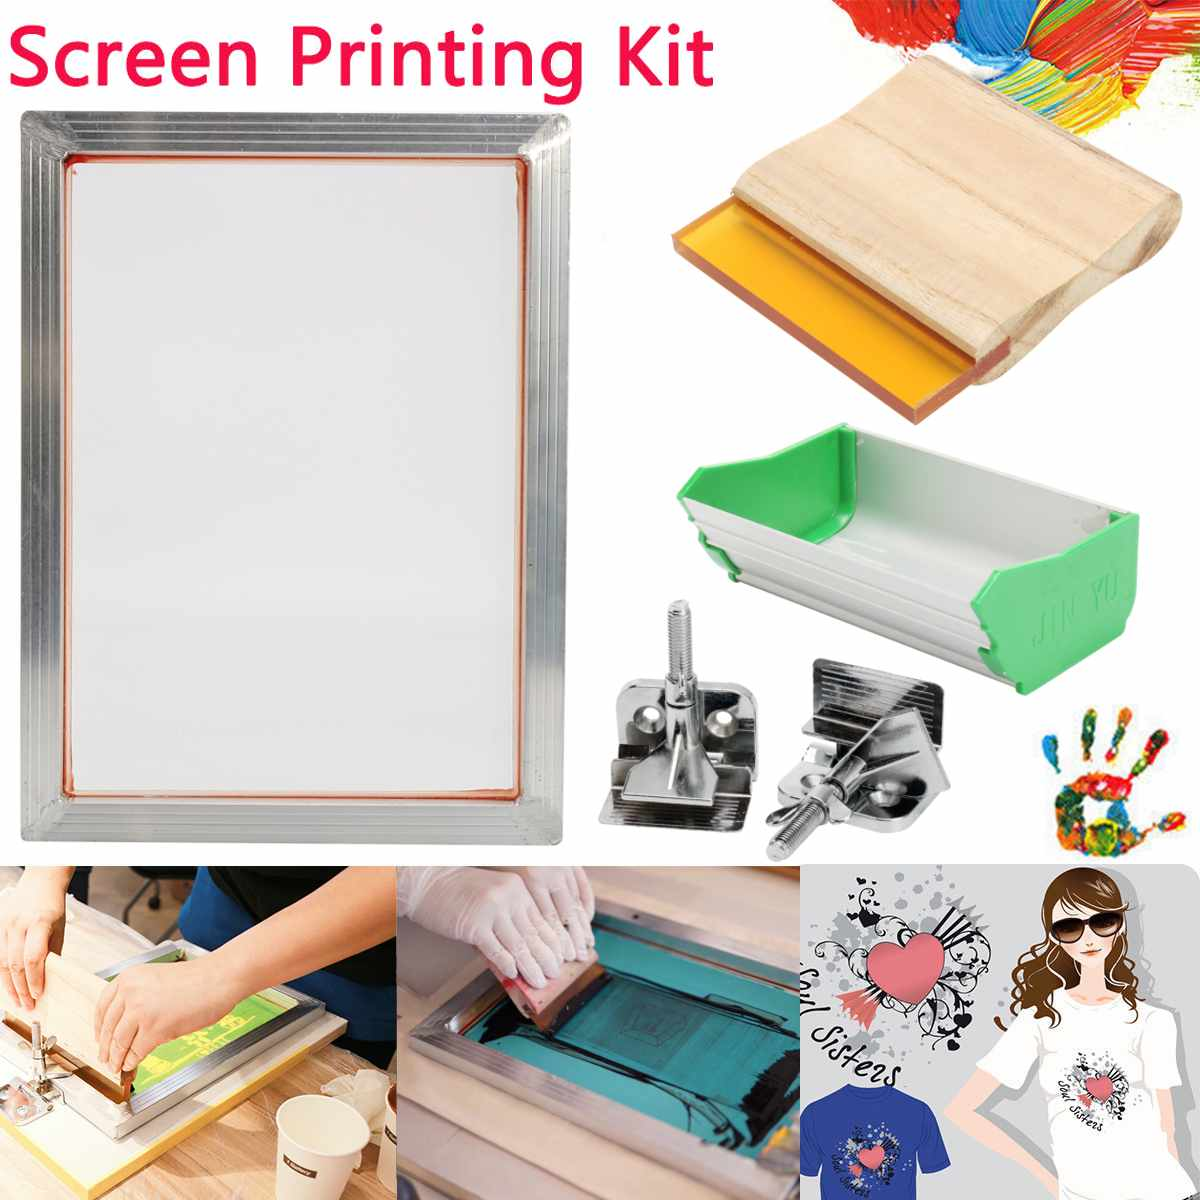 5Pcs/Set A5 Screen Printing Kit Aluminum Frame+Hinge Clamp+Emulsion Coater+Squeegee Screen Frame Printing Tool Parts 2019 New